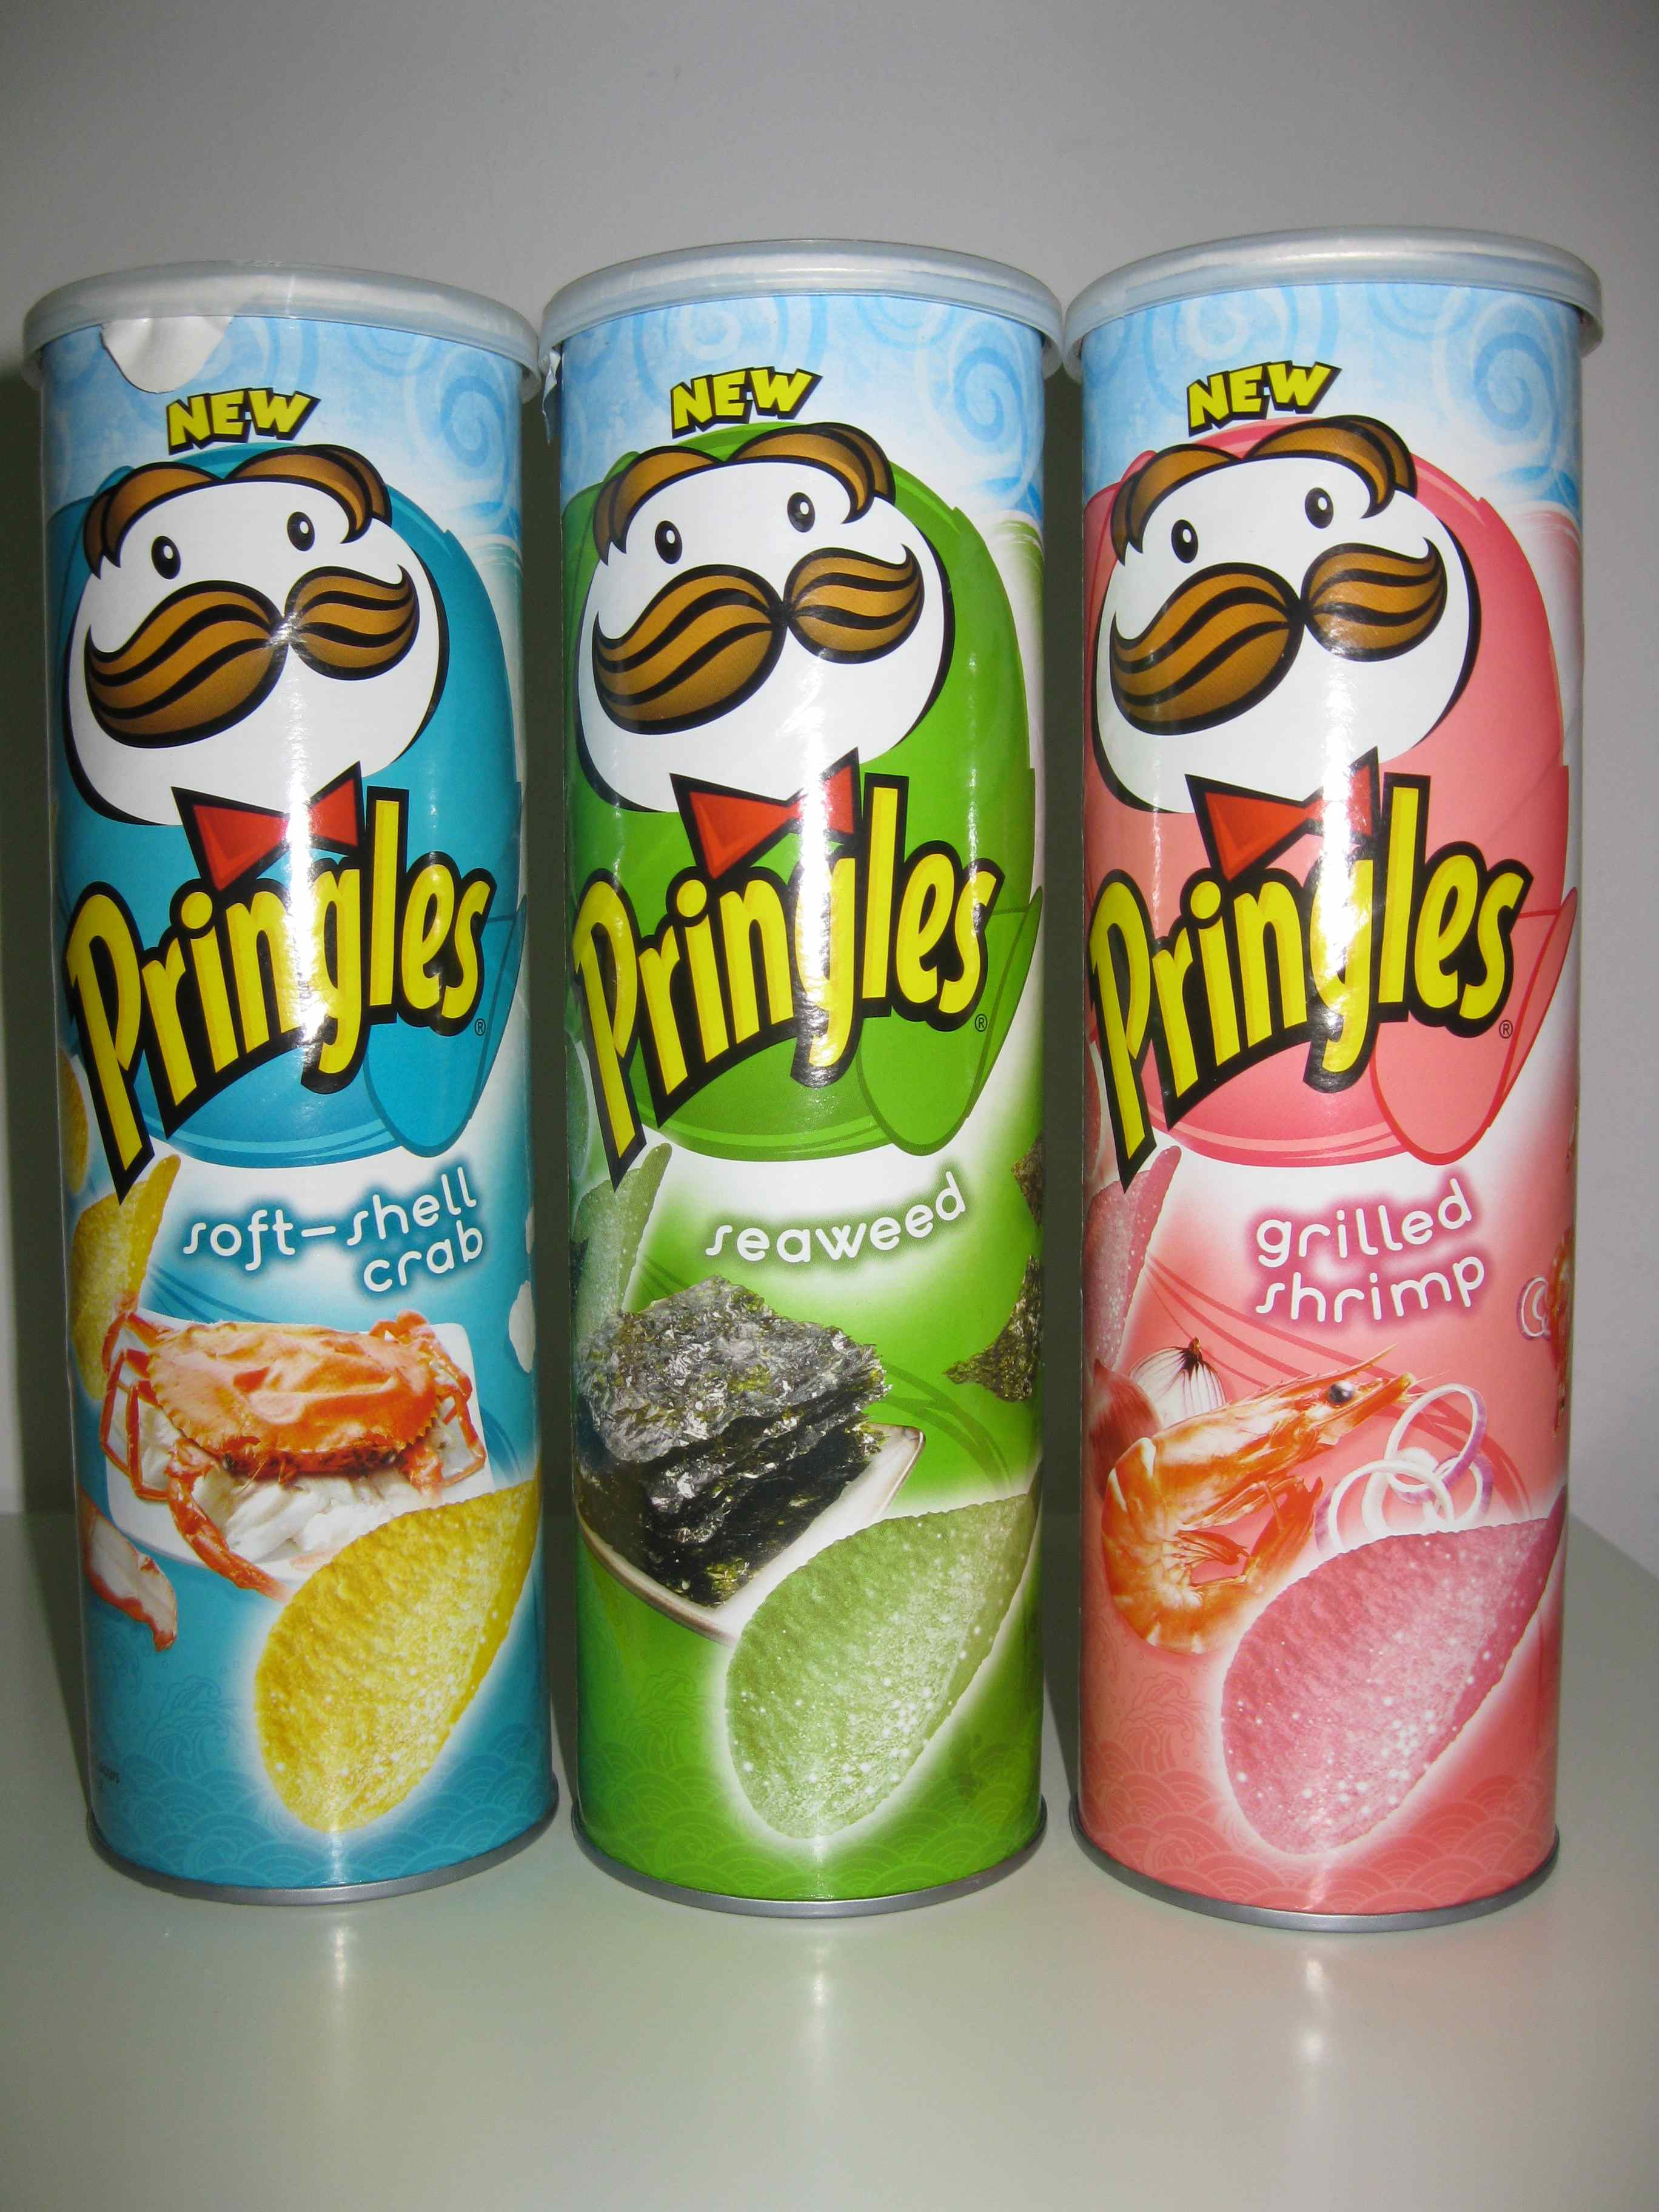 Three flavors of Pringles potato chips you probably never knew existed.